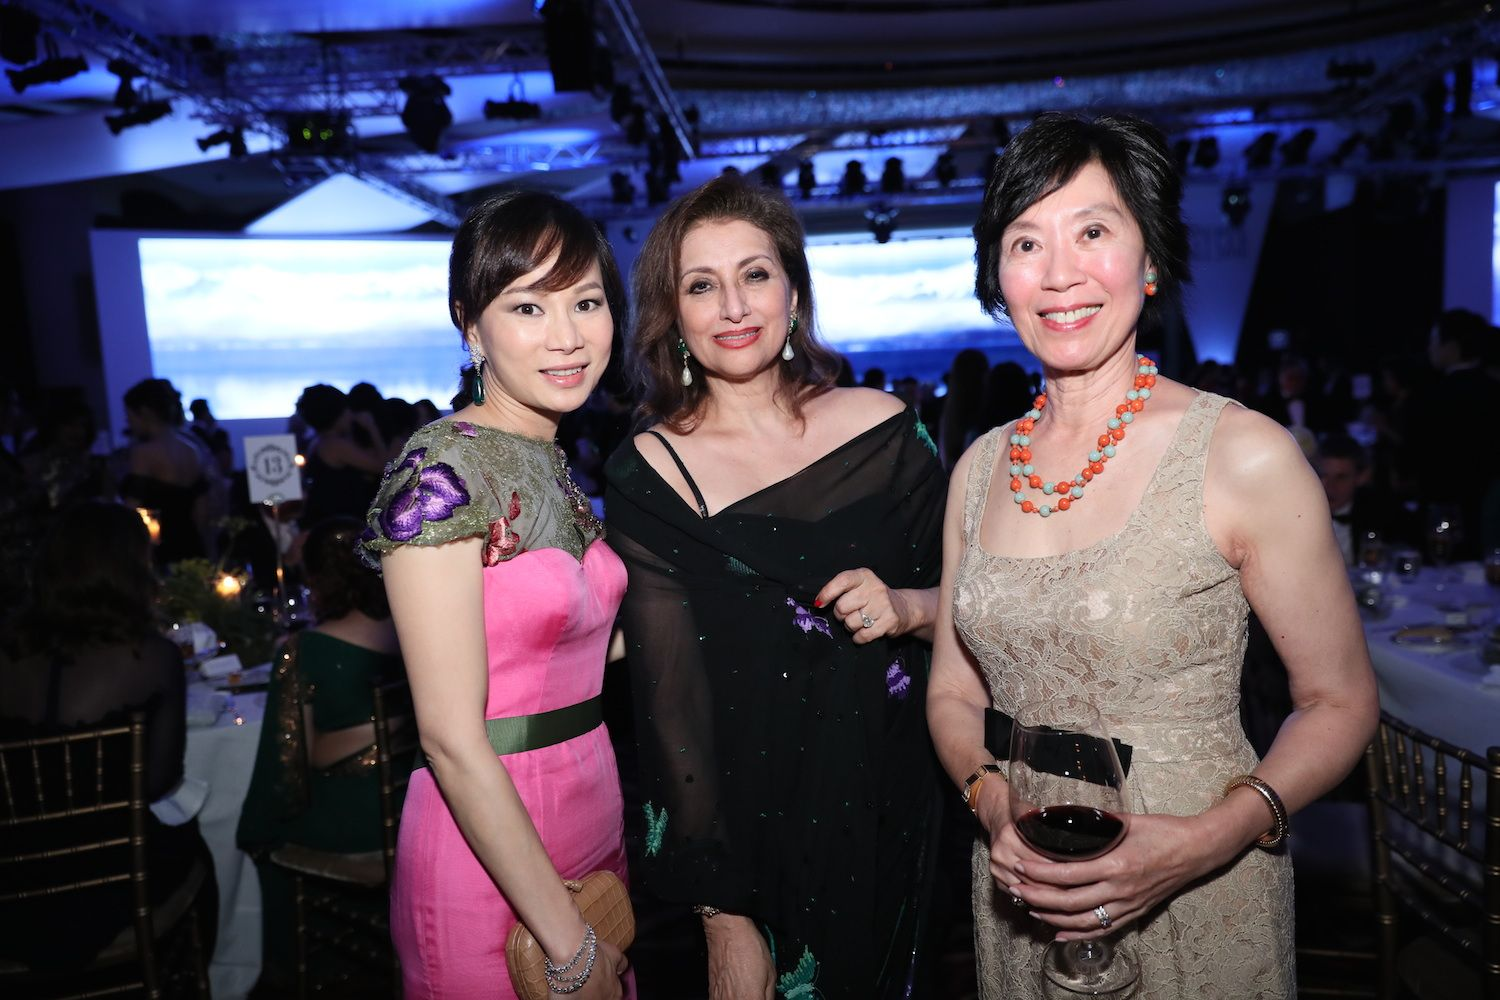 Dorothy Cheng, Bhagwanti Mohan and Harriet Tung